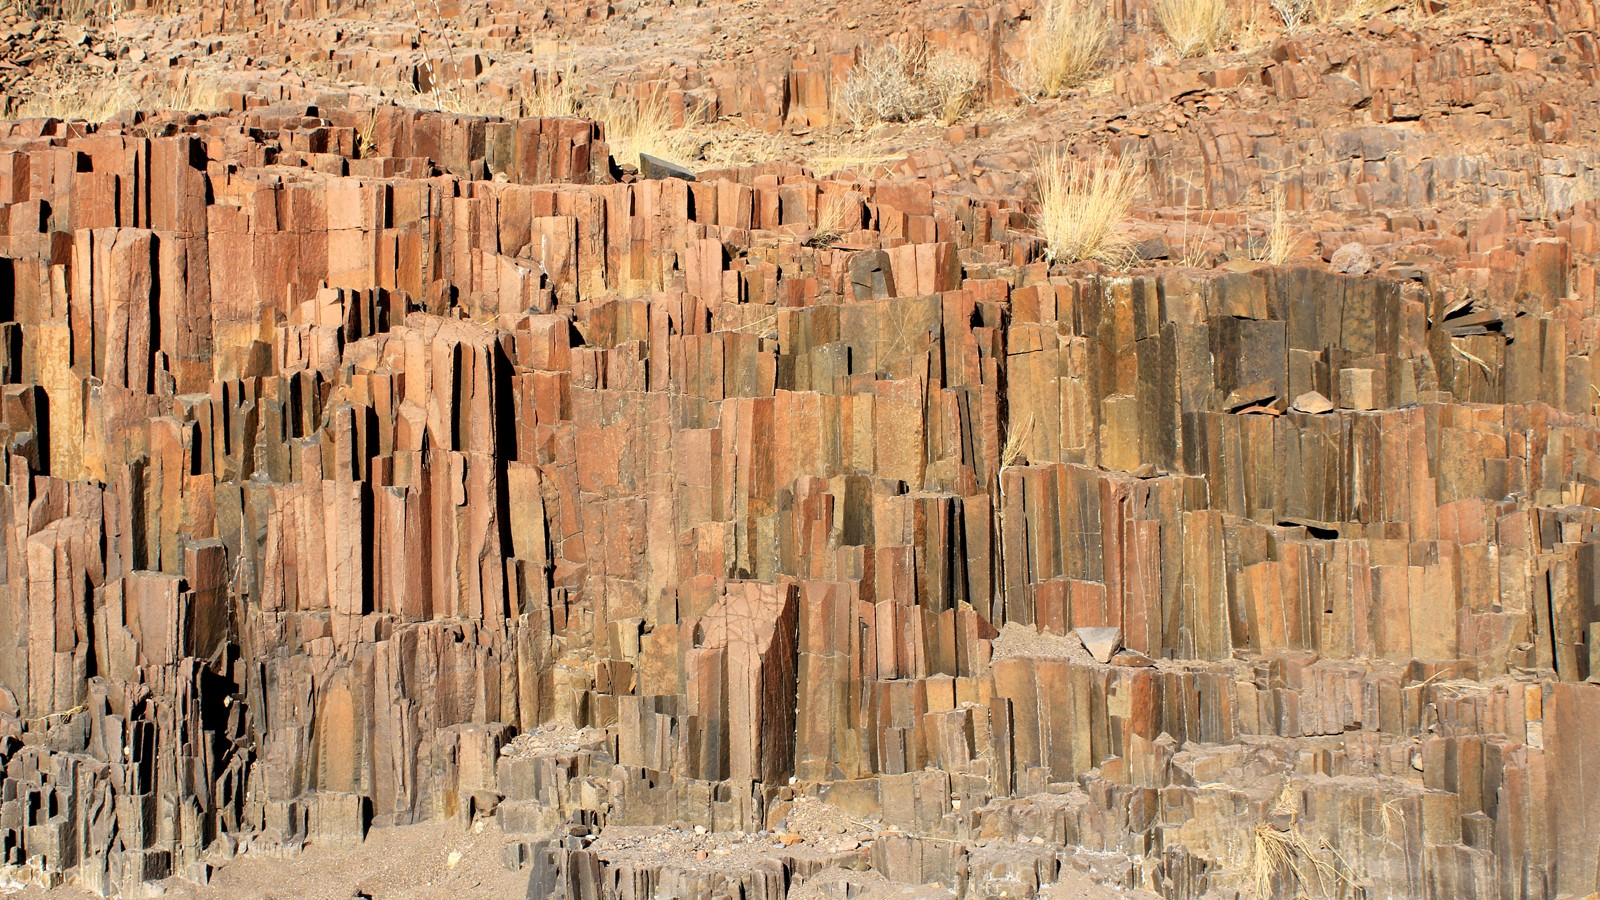 """The Organ Pipes"", a geological formation of volcanic rocks in t"